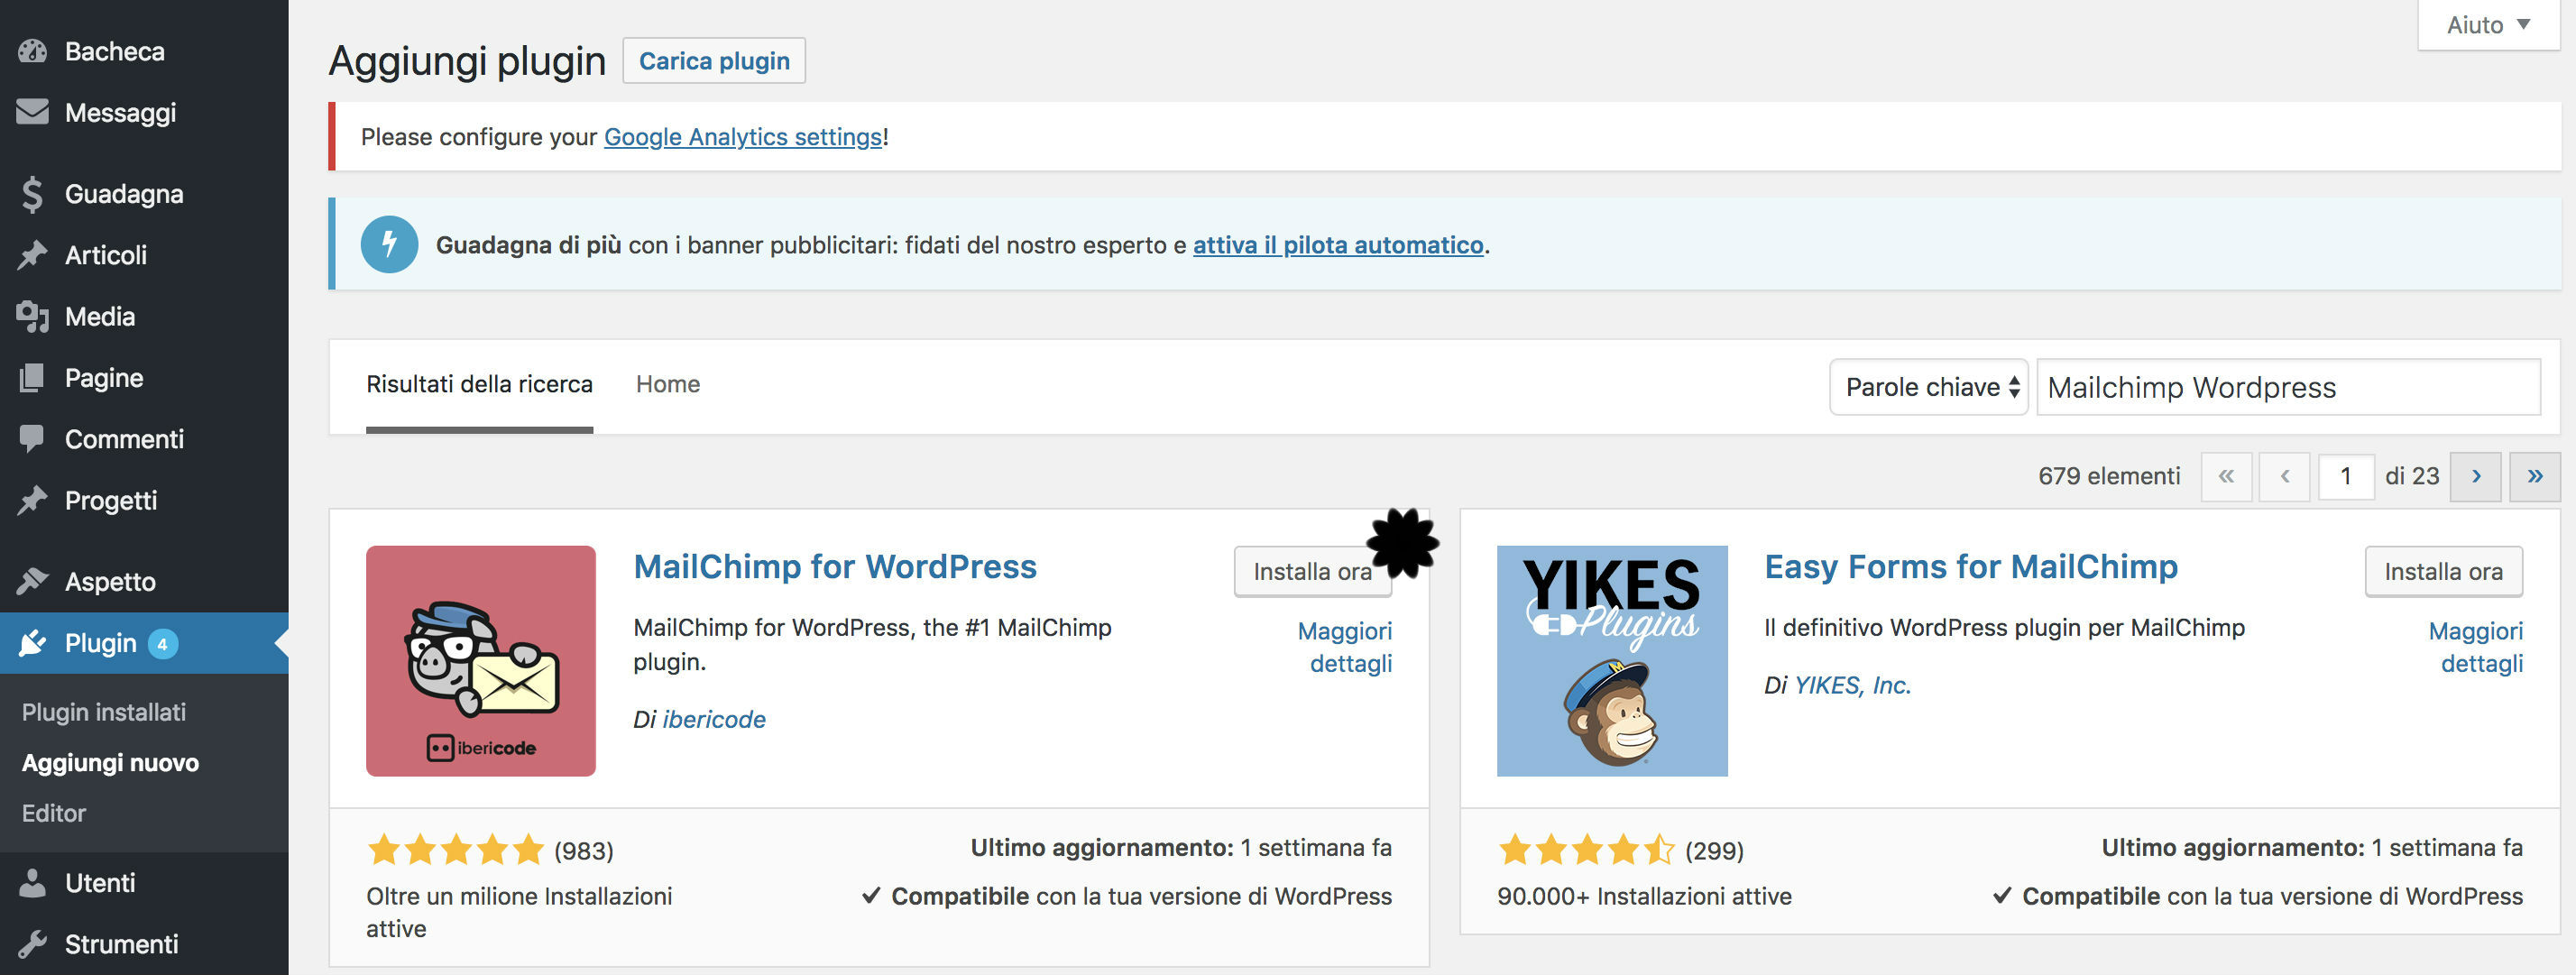 Mailchimp WordPress, Mailchimp for WordPress, Mailchimp newsletter, Mailchimp WordPress integration, Mailchimp WordPress tutorial